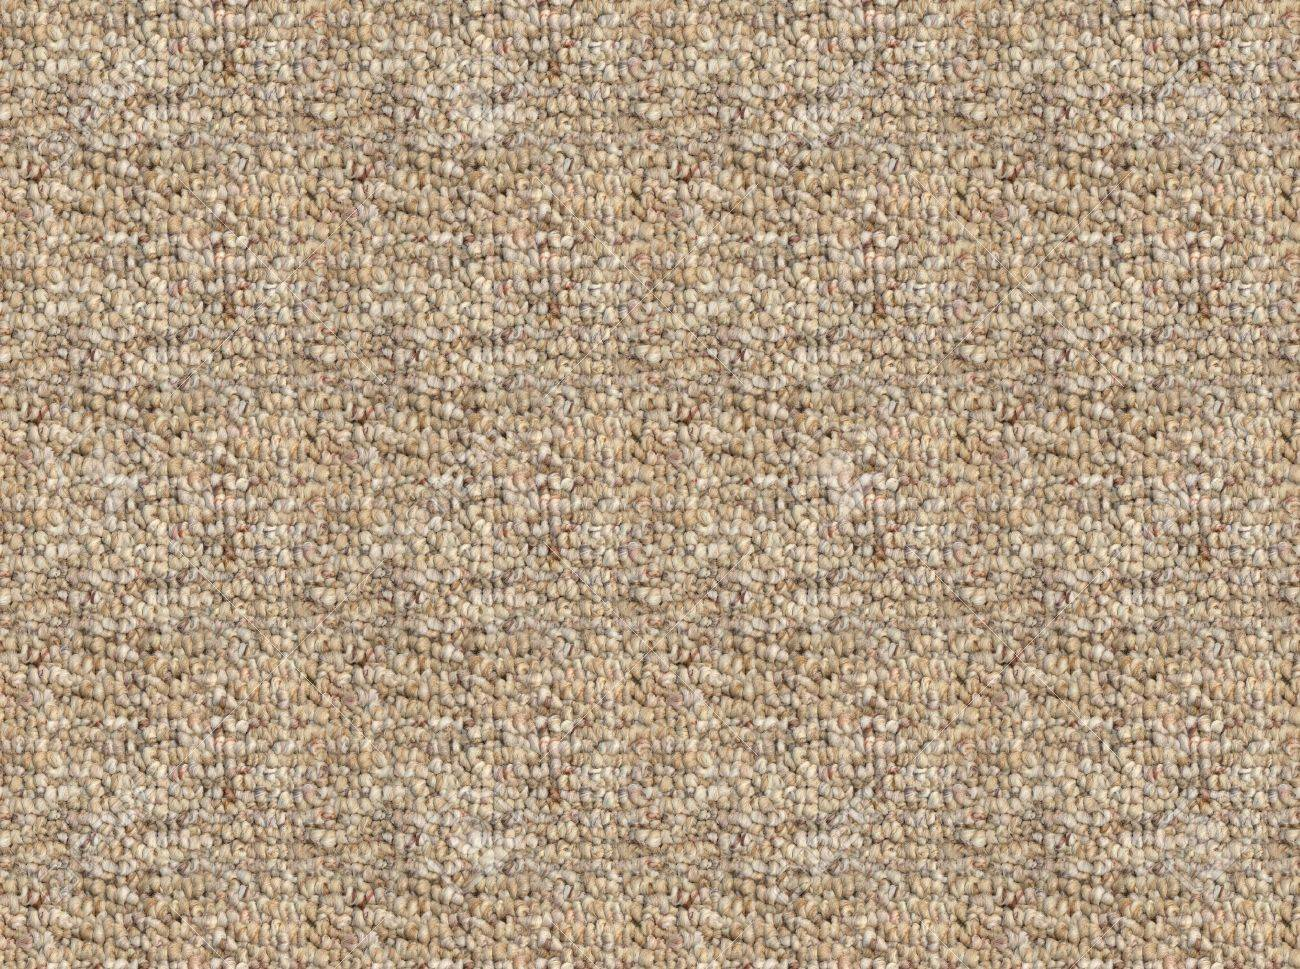 beige carpet texture pattern. background of carpet material pattern texture flooring stock photo - 17109724 beige